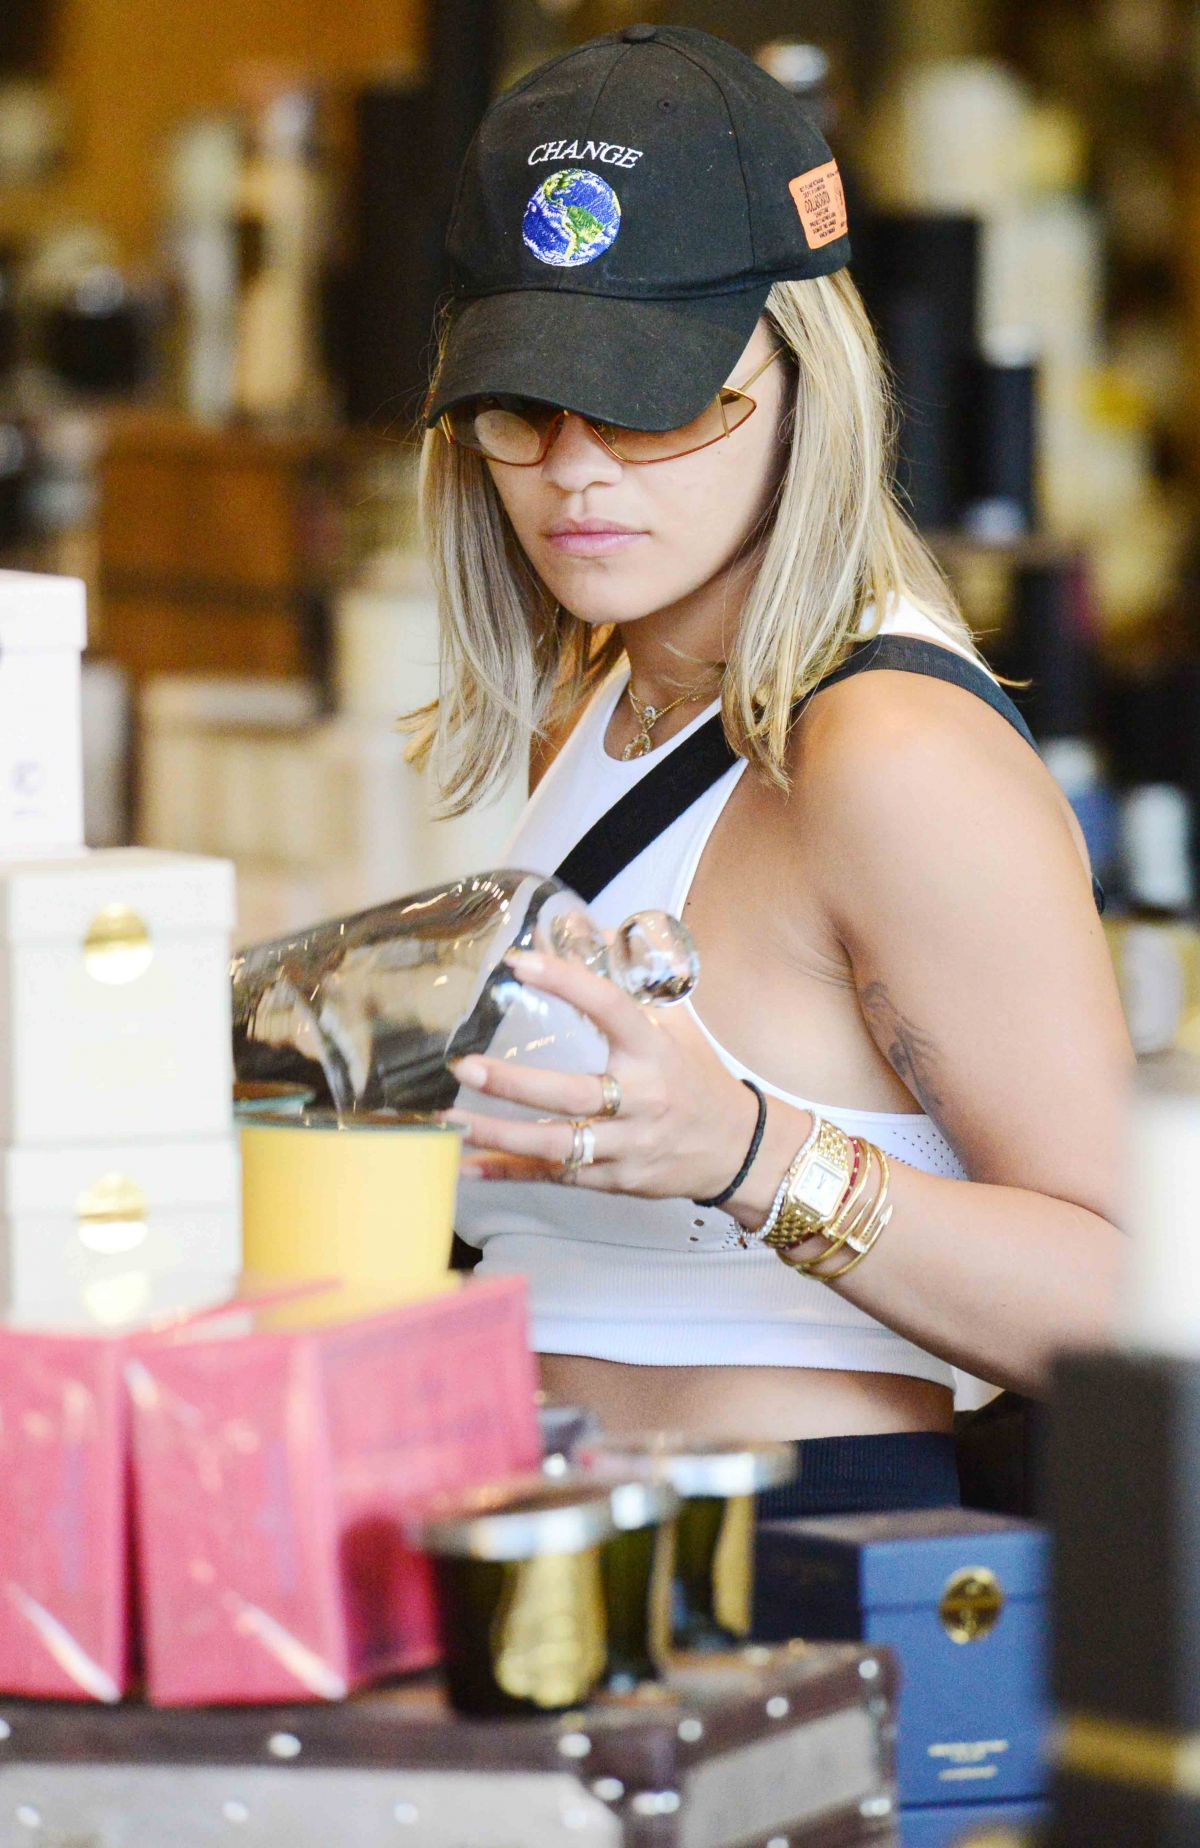 Rita Ora Shopping in West Hollywood   rita-ora-shopping-in-west-hollywood_24